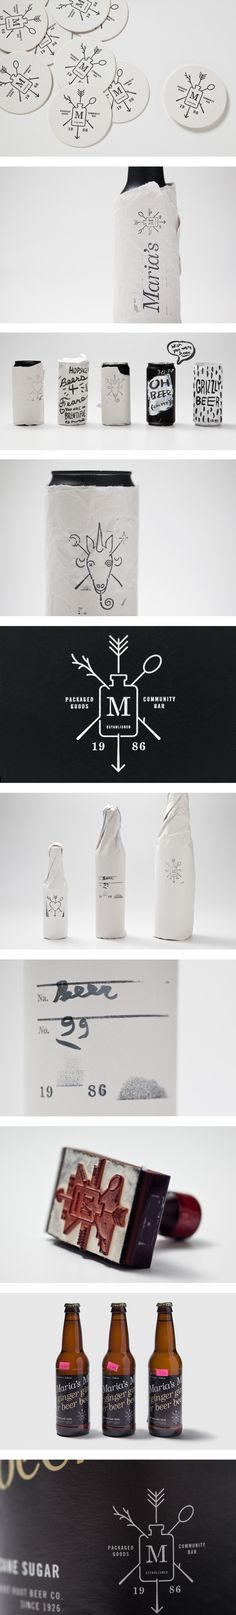 Maria's branding by Michael Freimuth